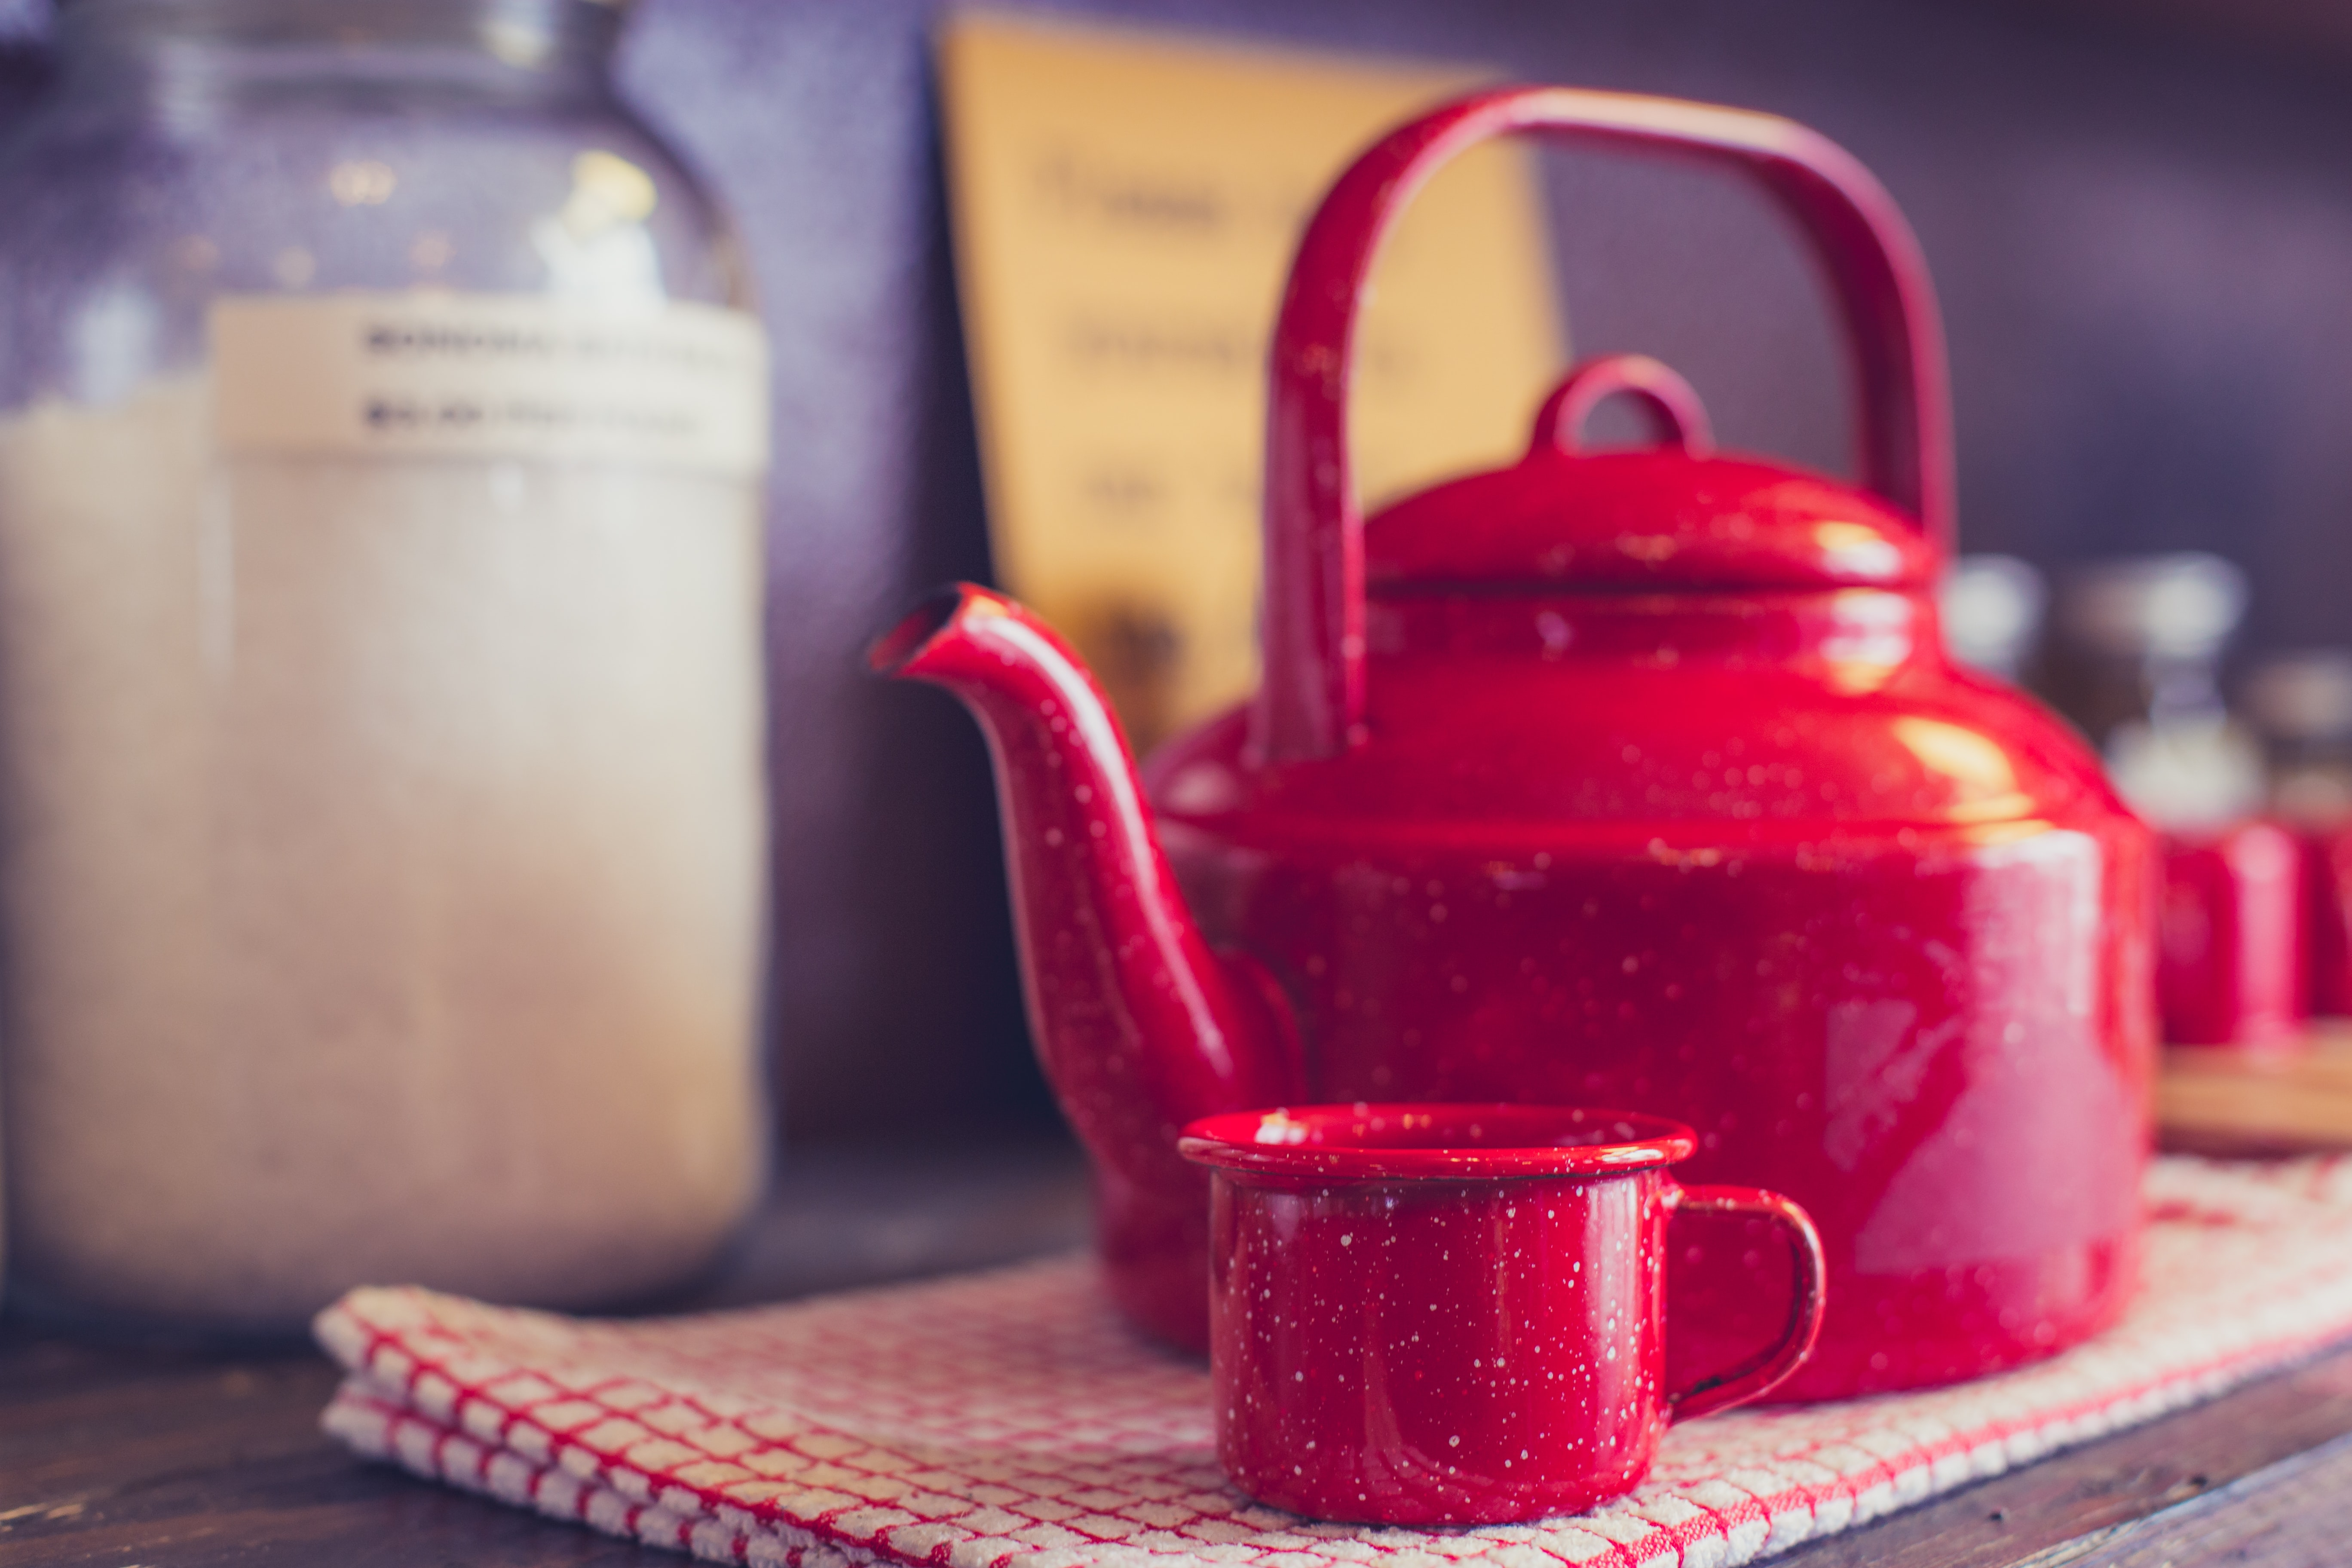 Red tea kettle with a red tea cup next to it on a red and white gingham cloth and kitchen wall in the background